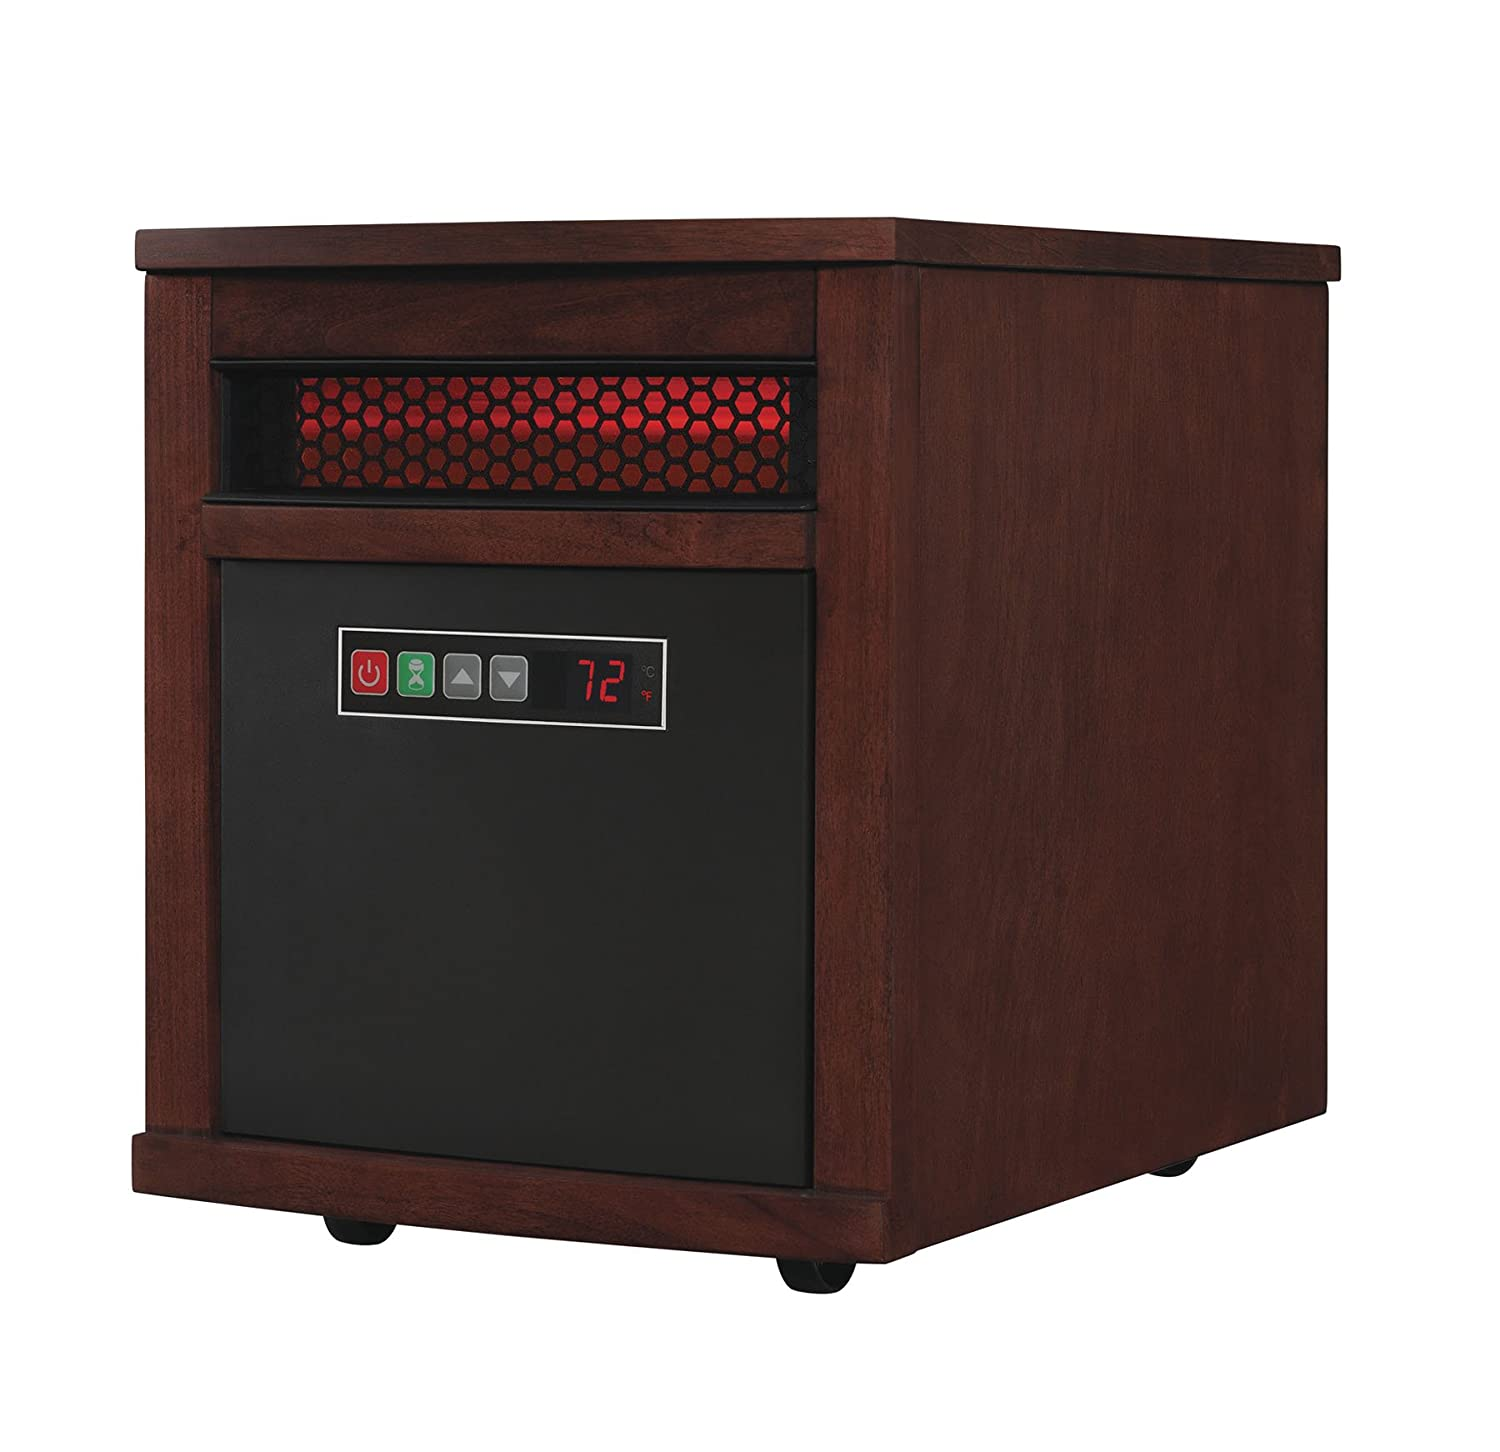 Top rated infrared heaters top five finds Best space heater for large room